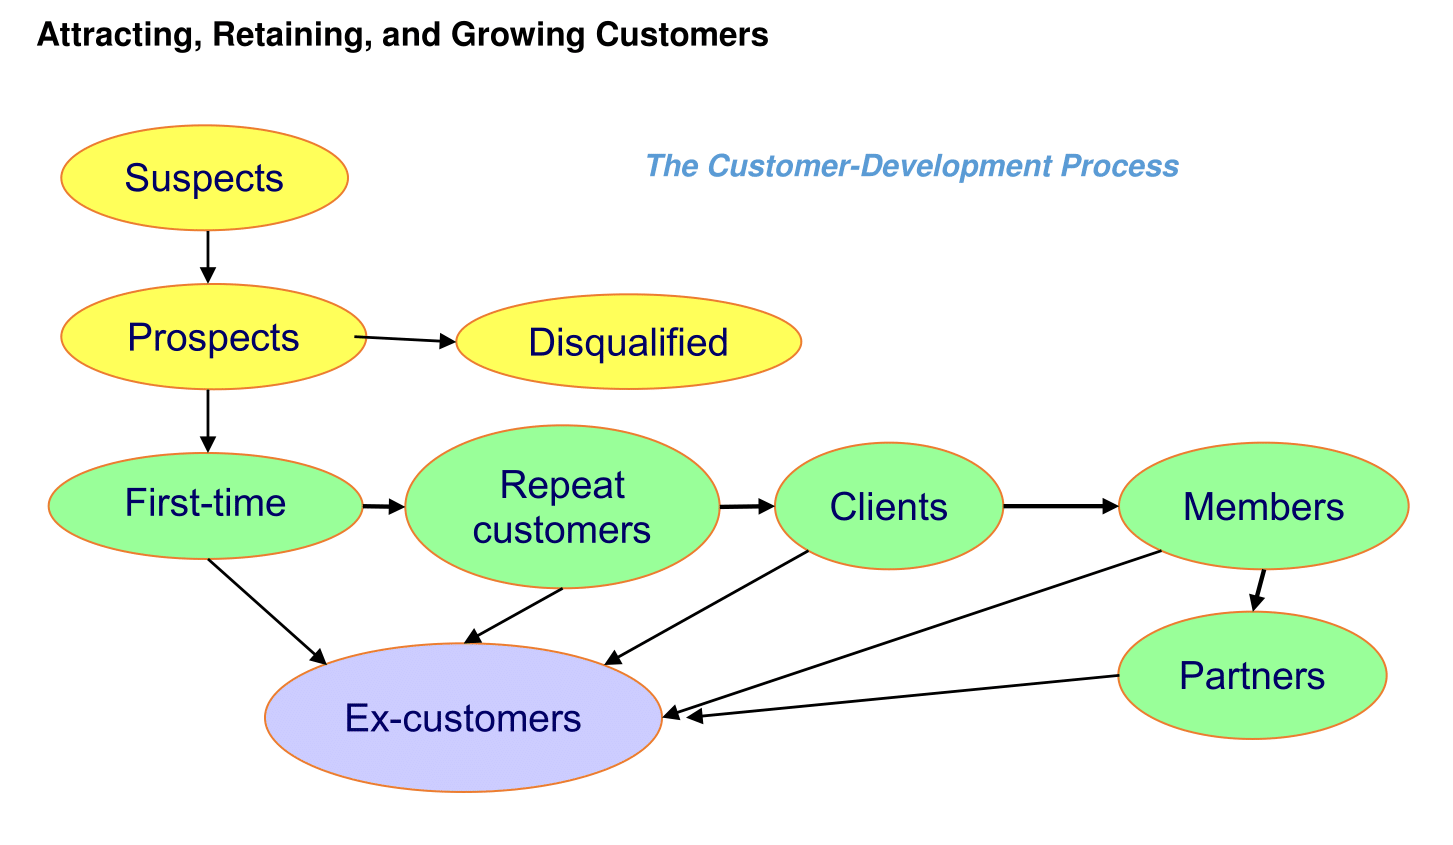 The Customer Development Process